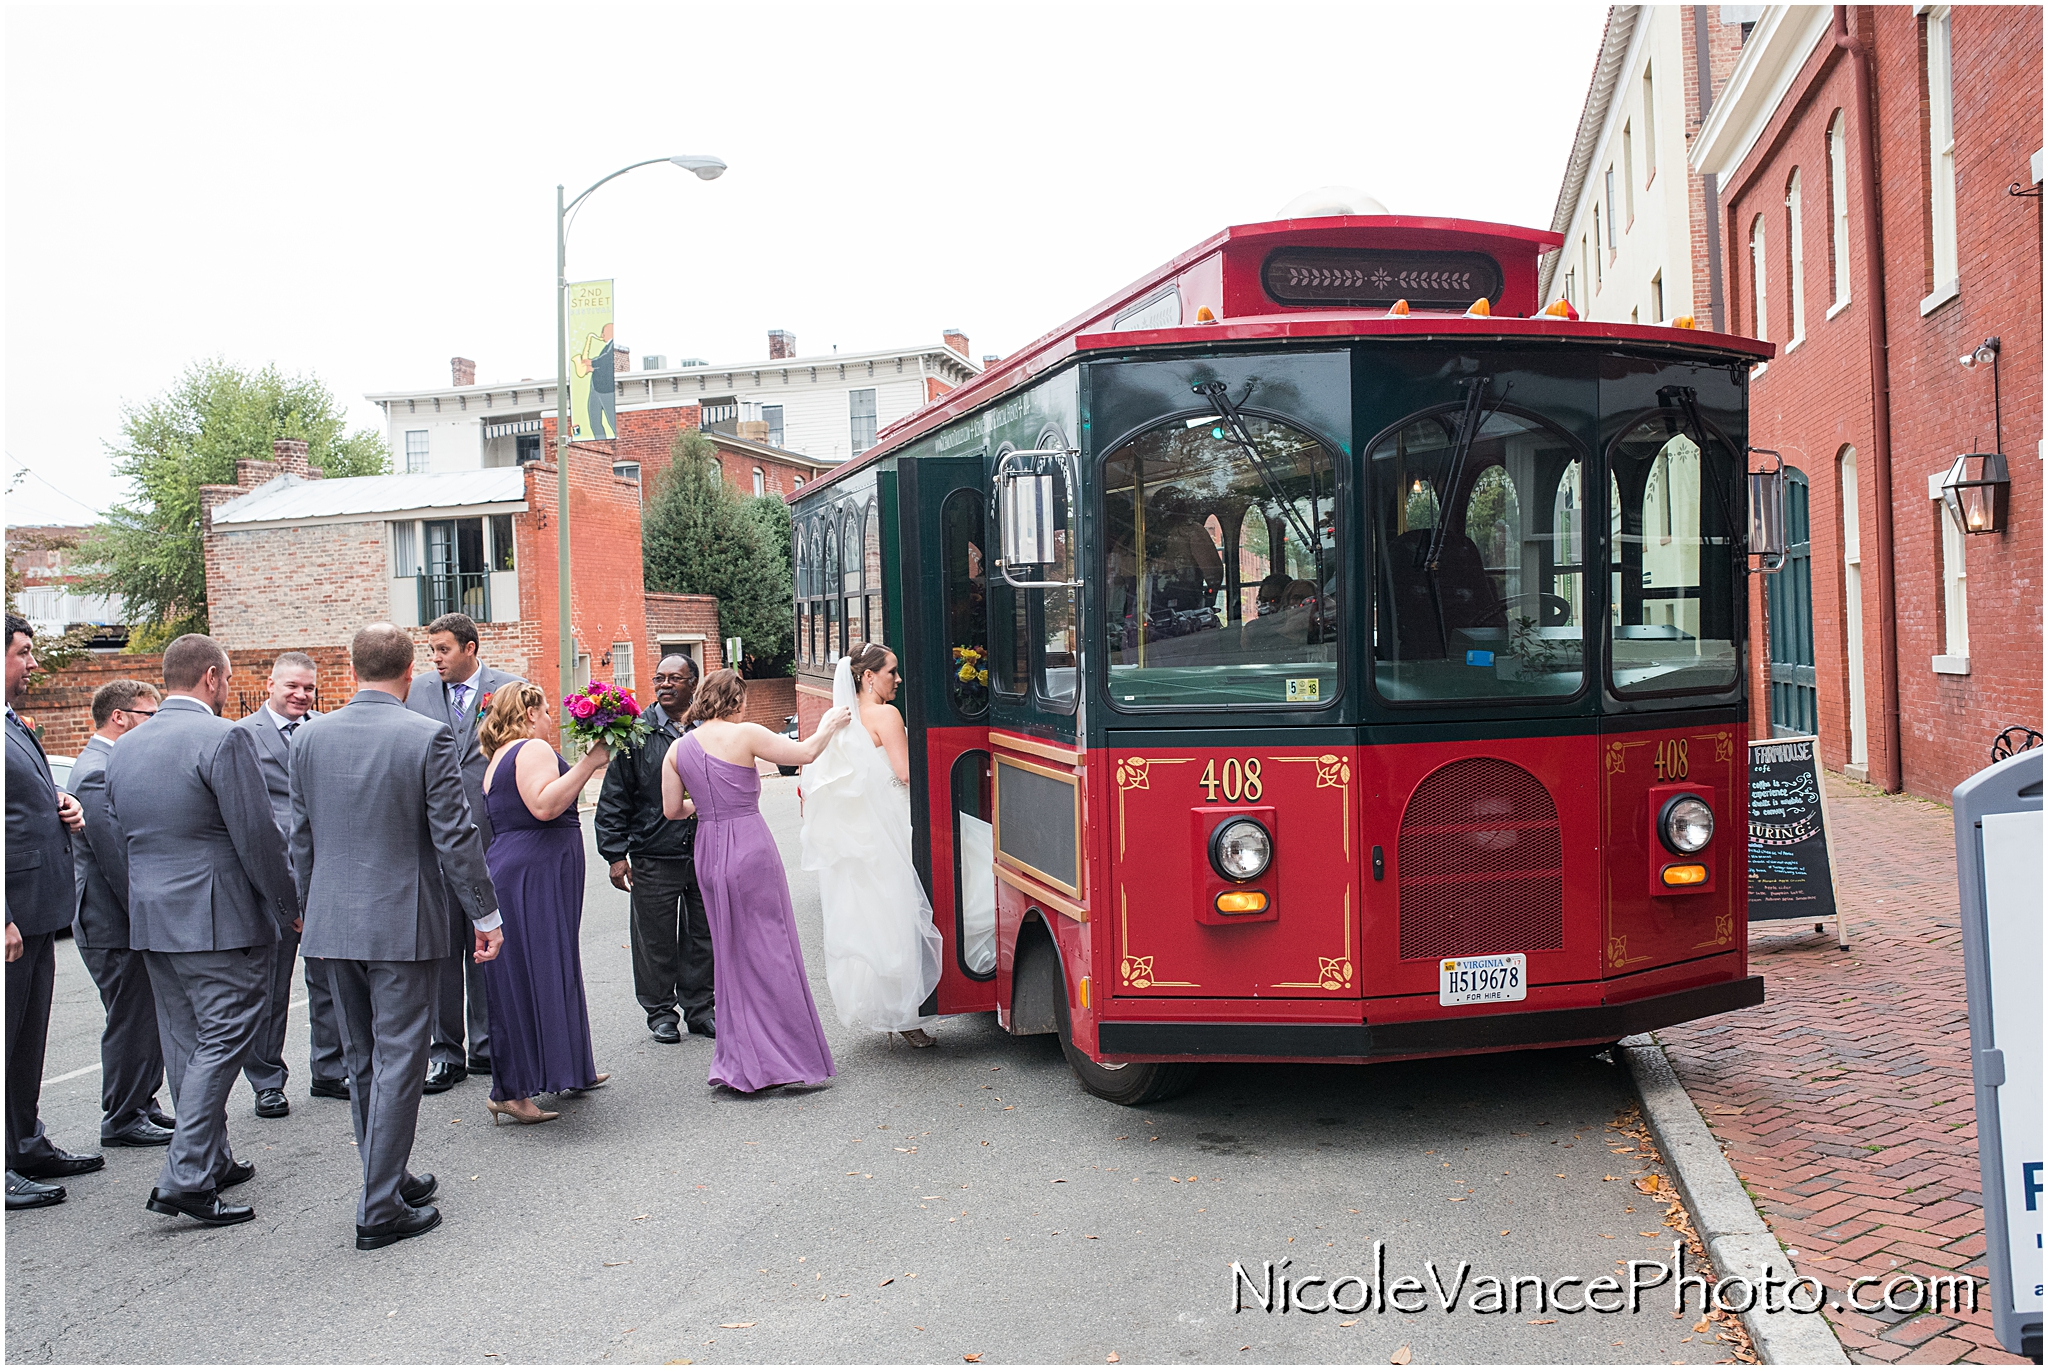 The bridal party boards the trolley to travel to the wedding ceremony at the Church.